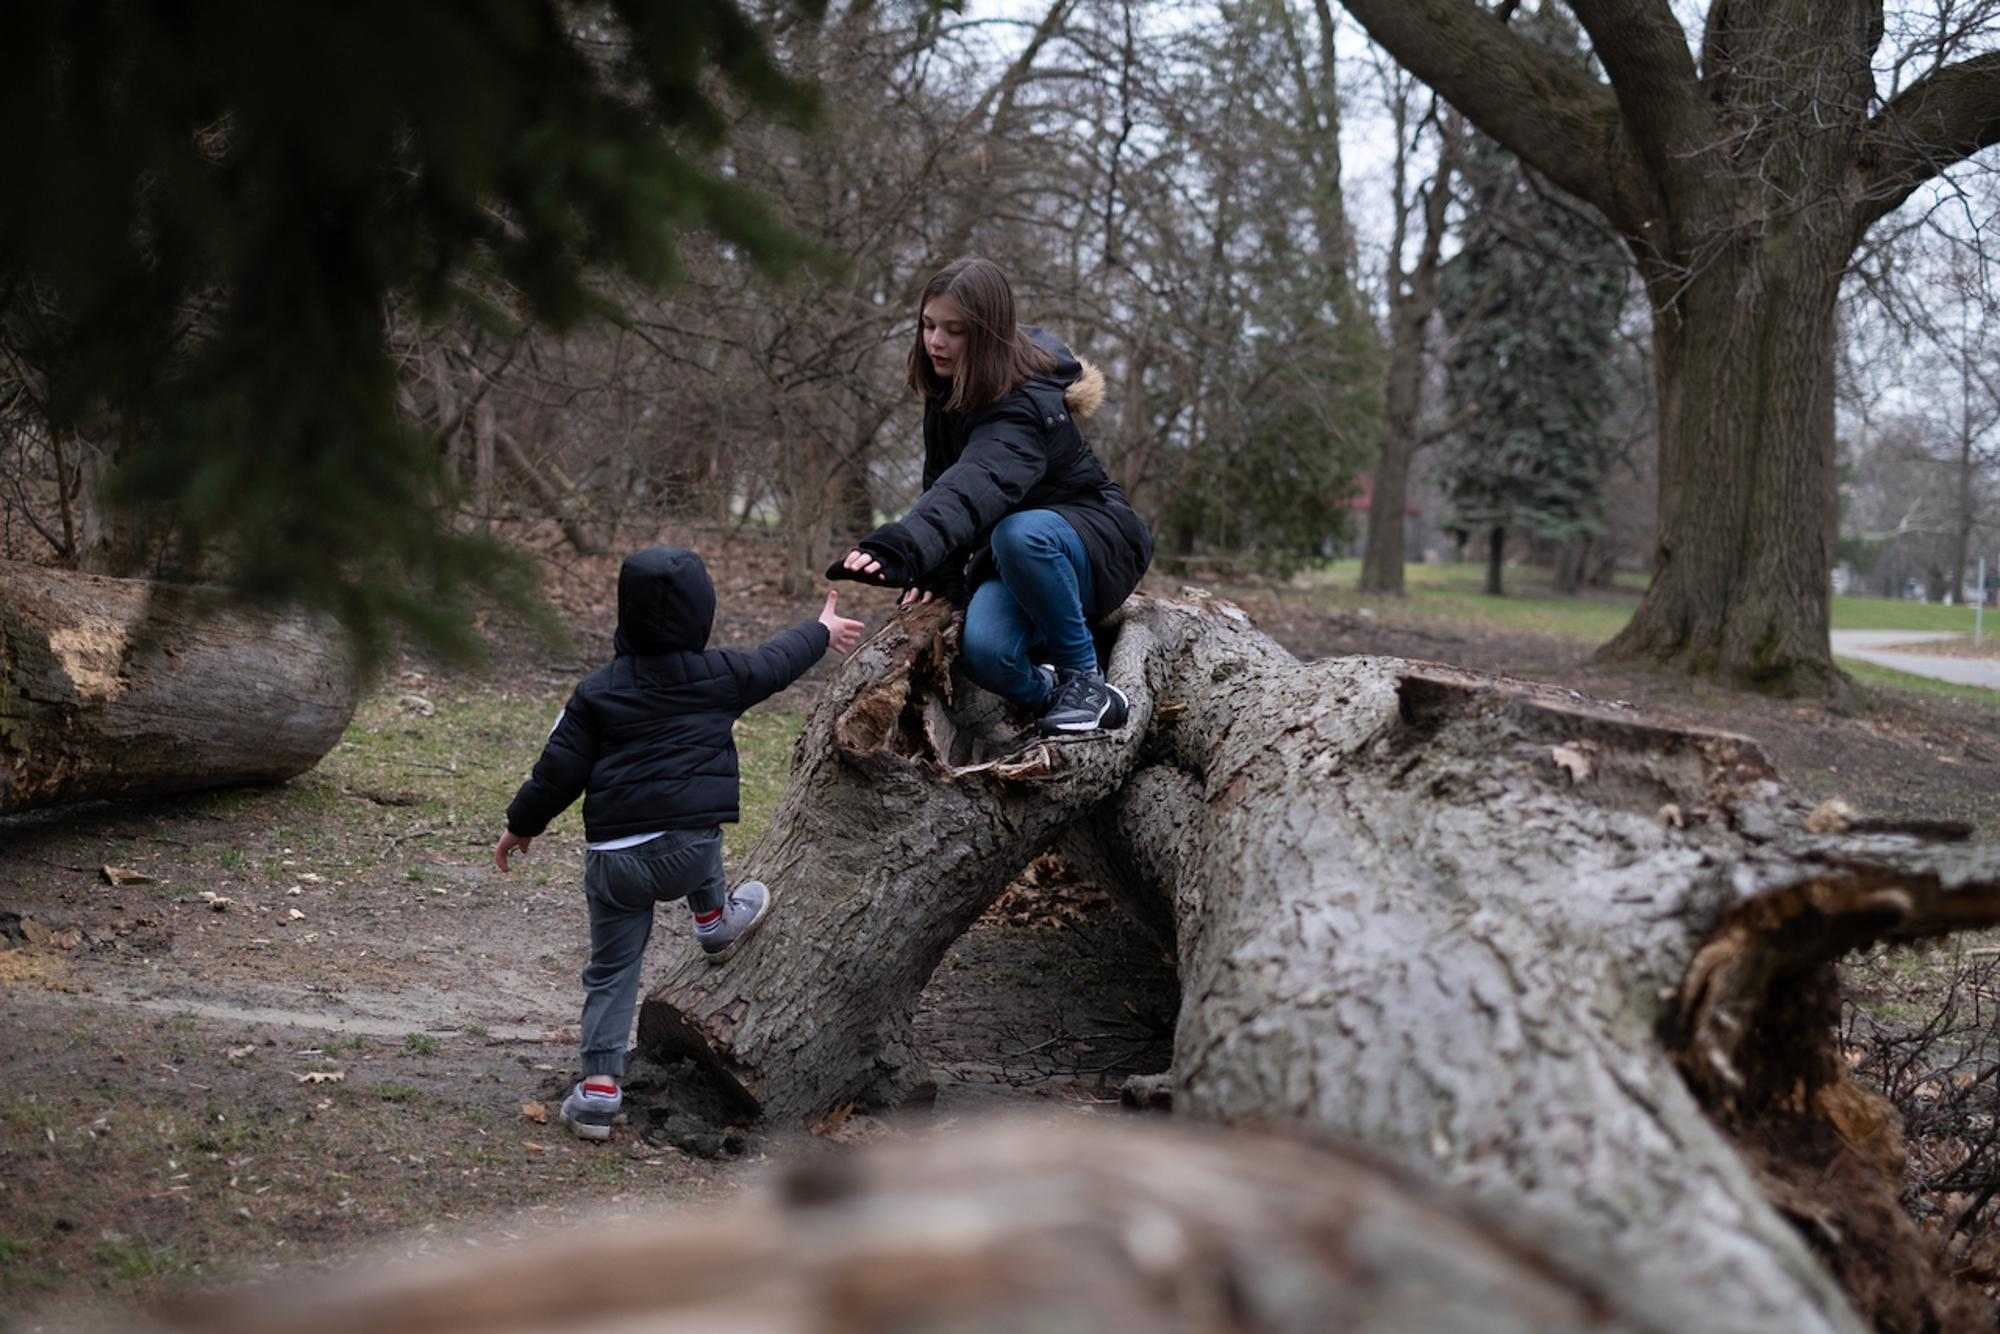 Aniela lends a hand to Emanuel as he climbs up on a log to walk across it together with his sister.Taken by Erik Paul Howard for WDET